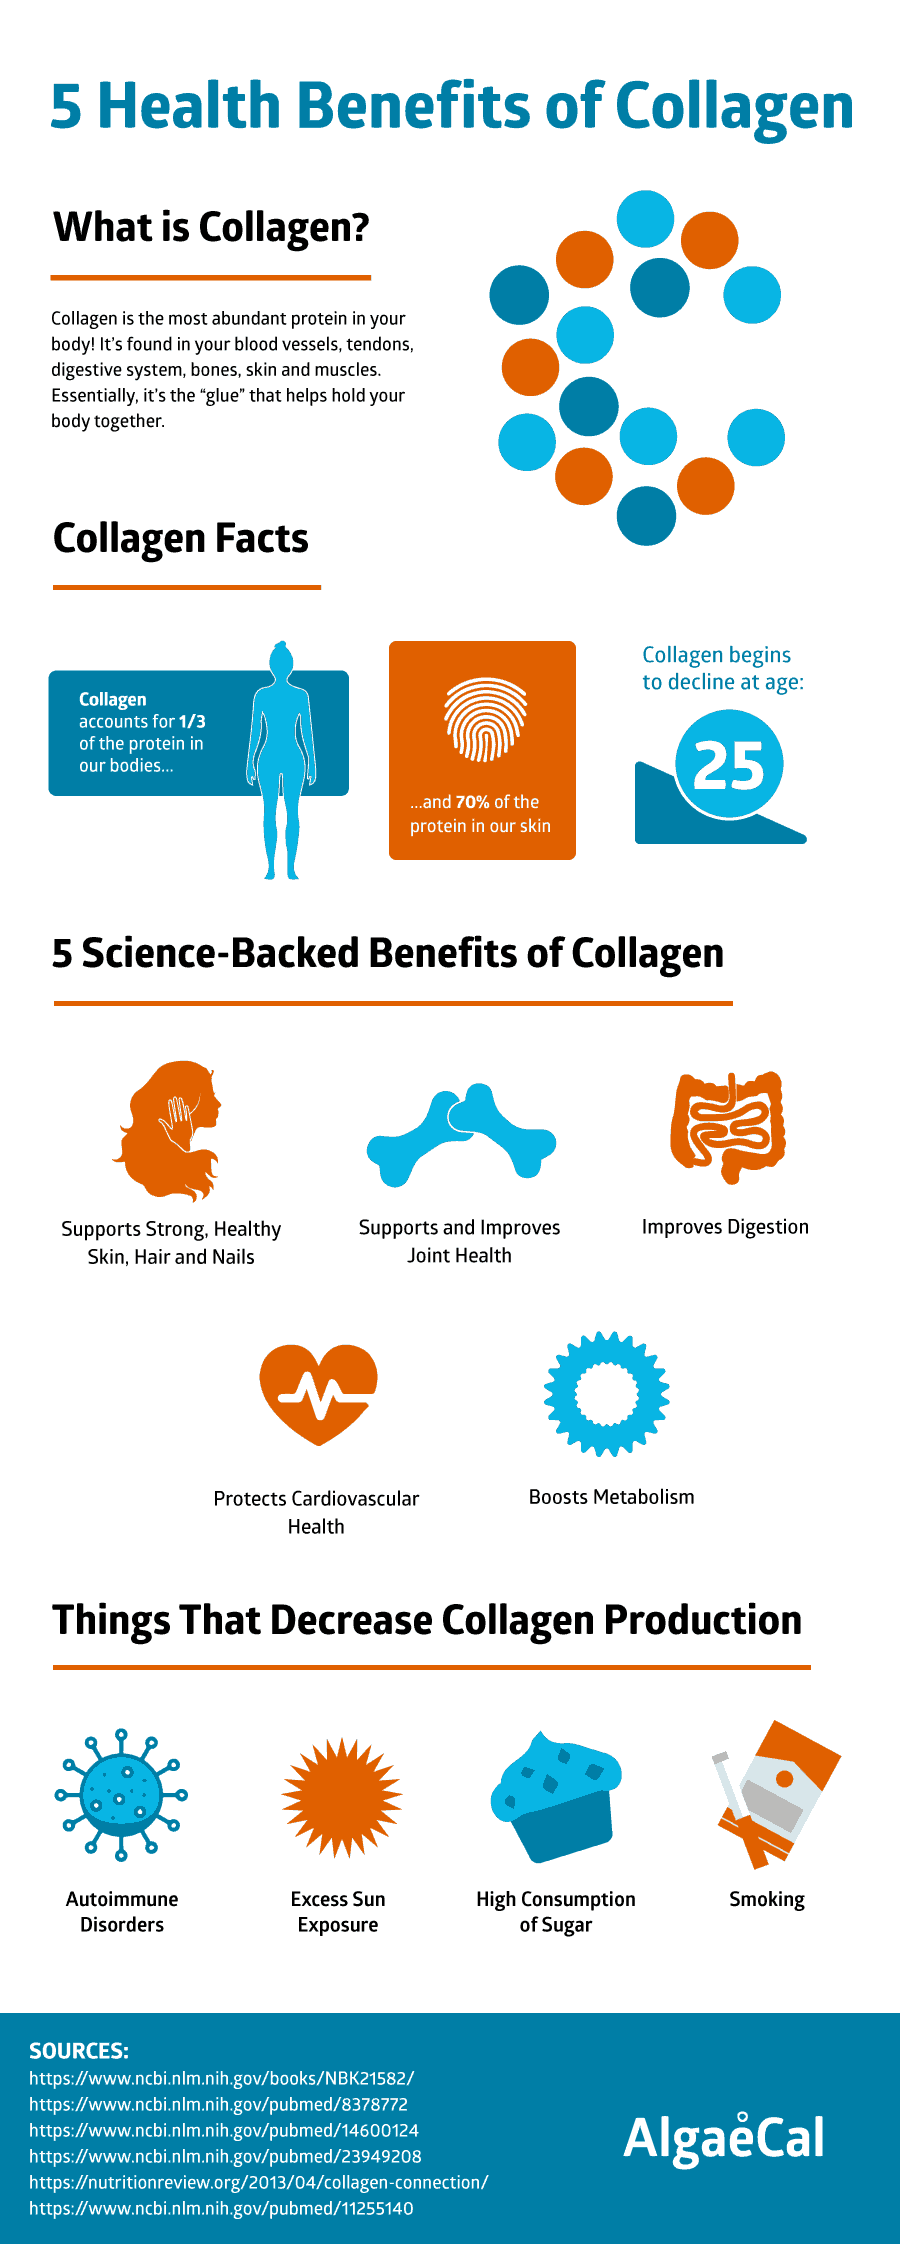 5 Health Benefits of Collagen